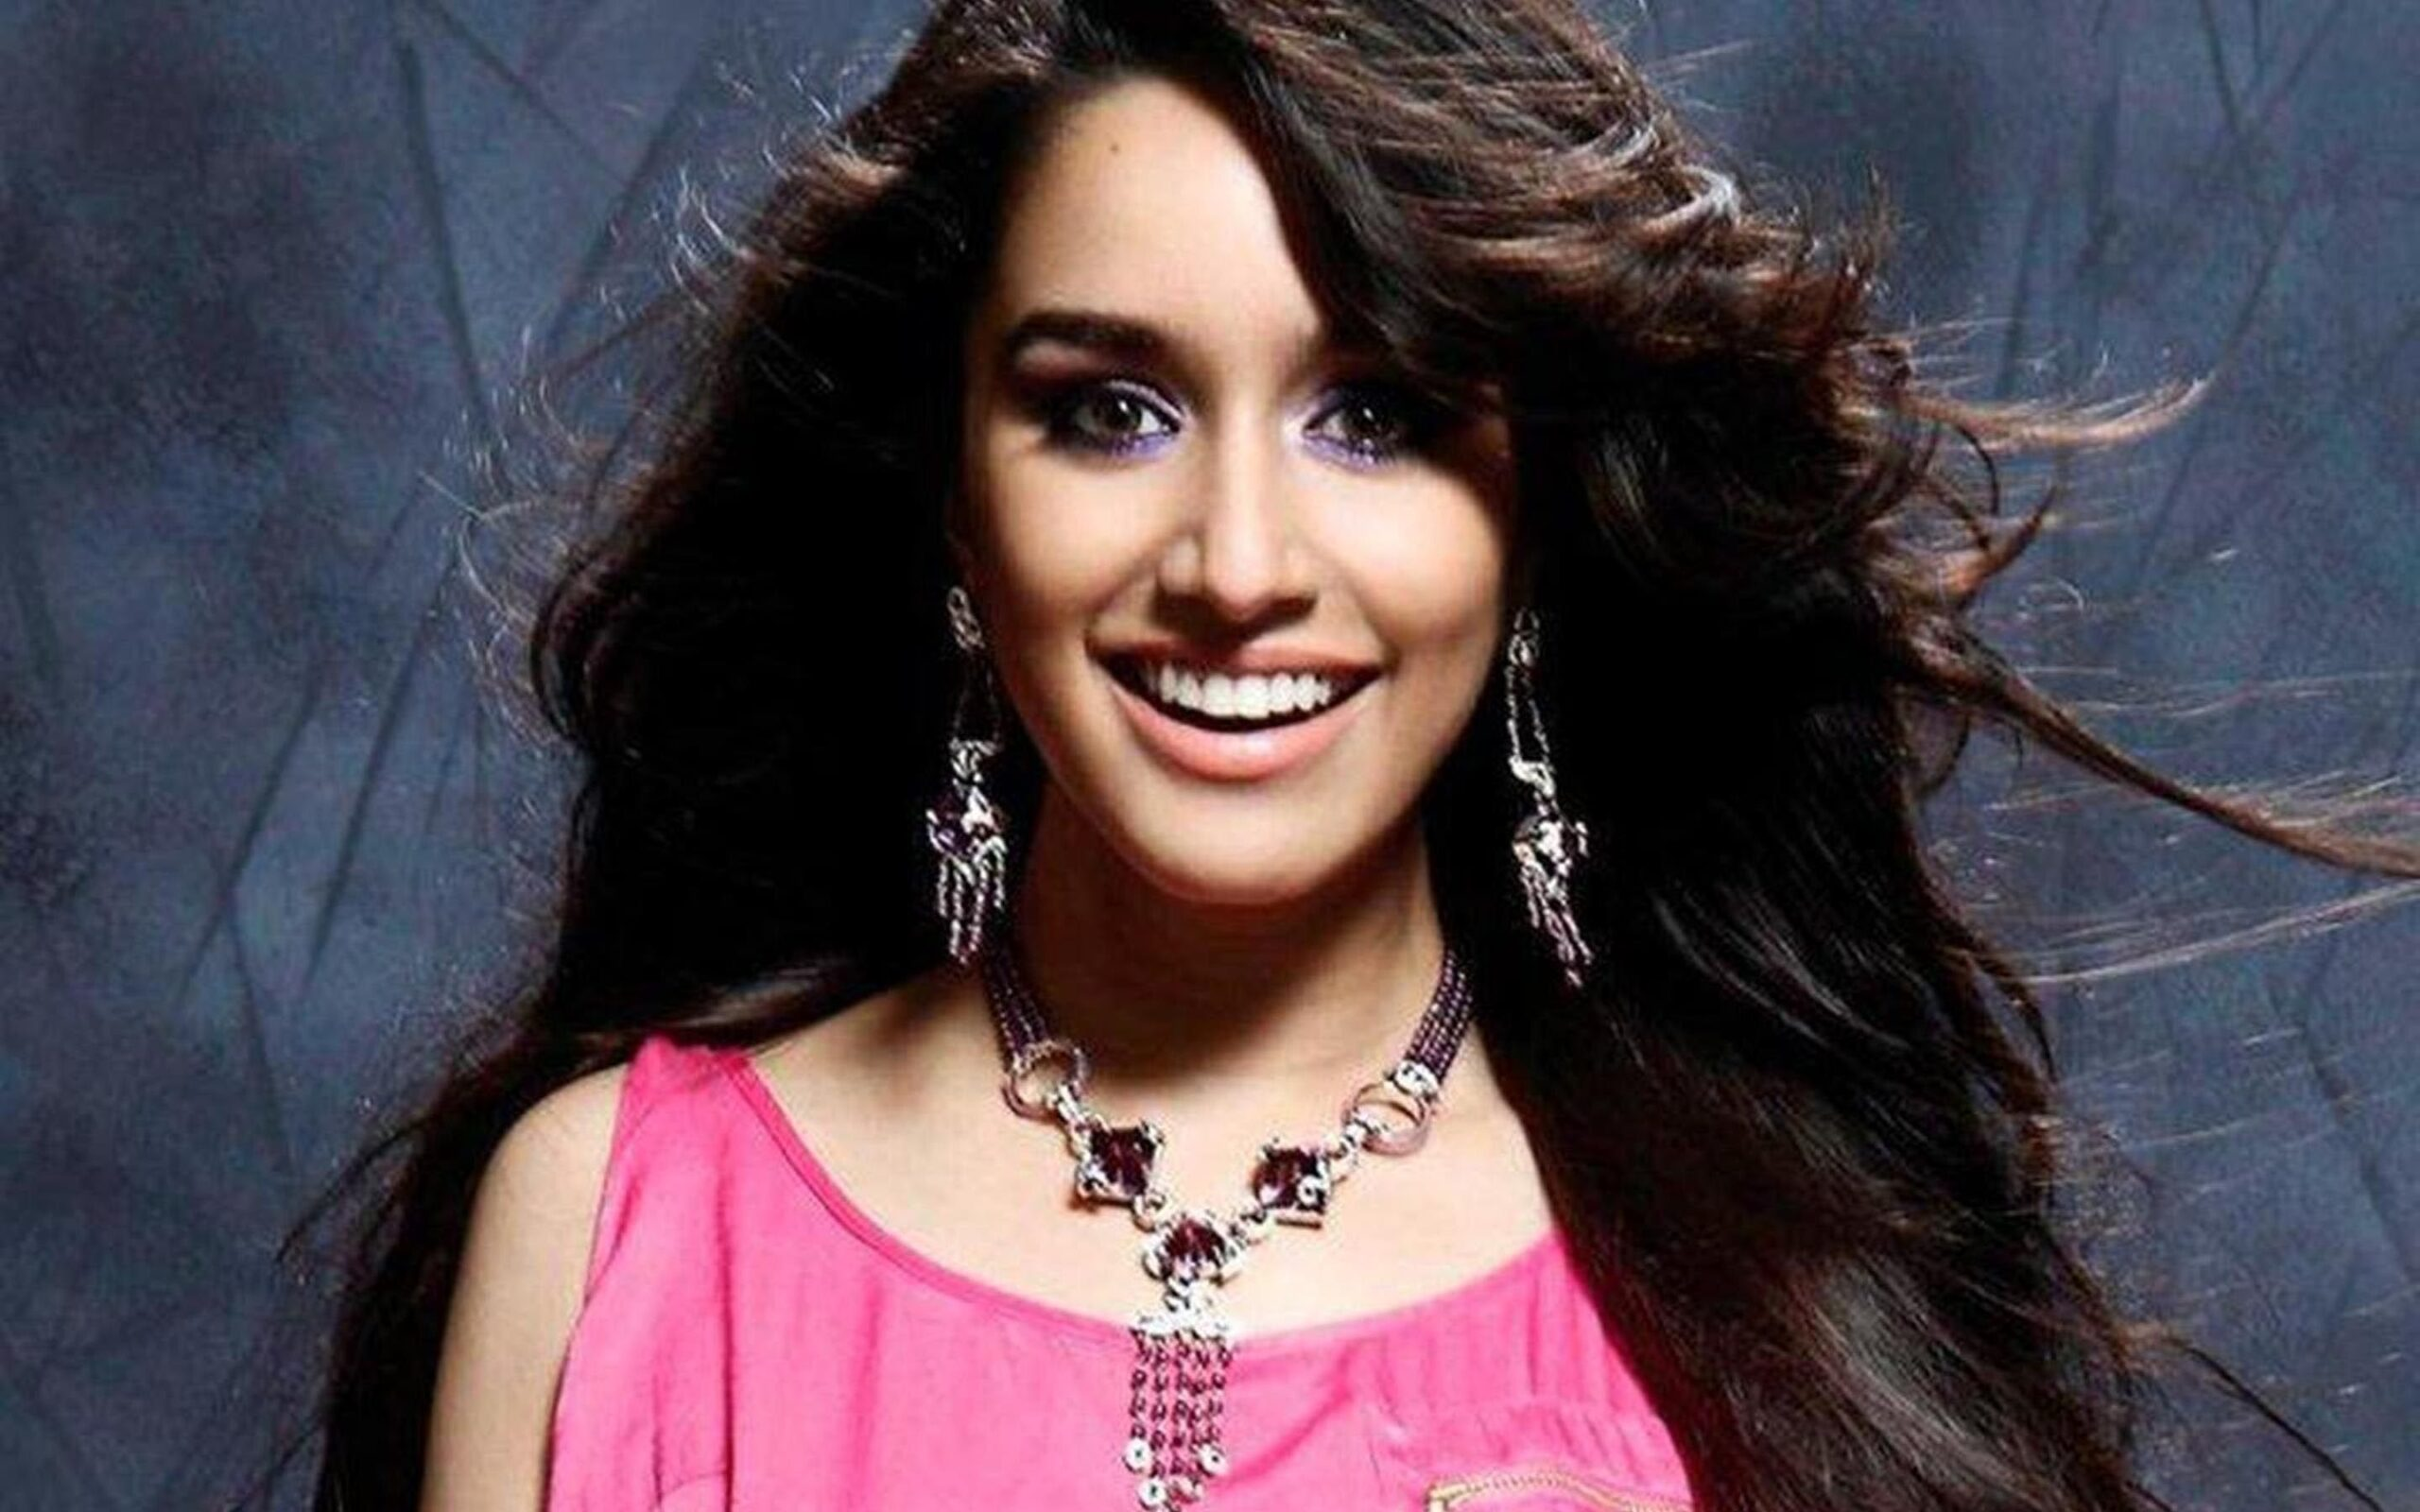 shraddha_kapoor_wallpaper_97338048